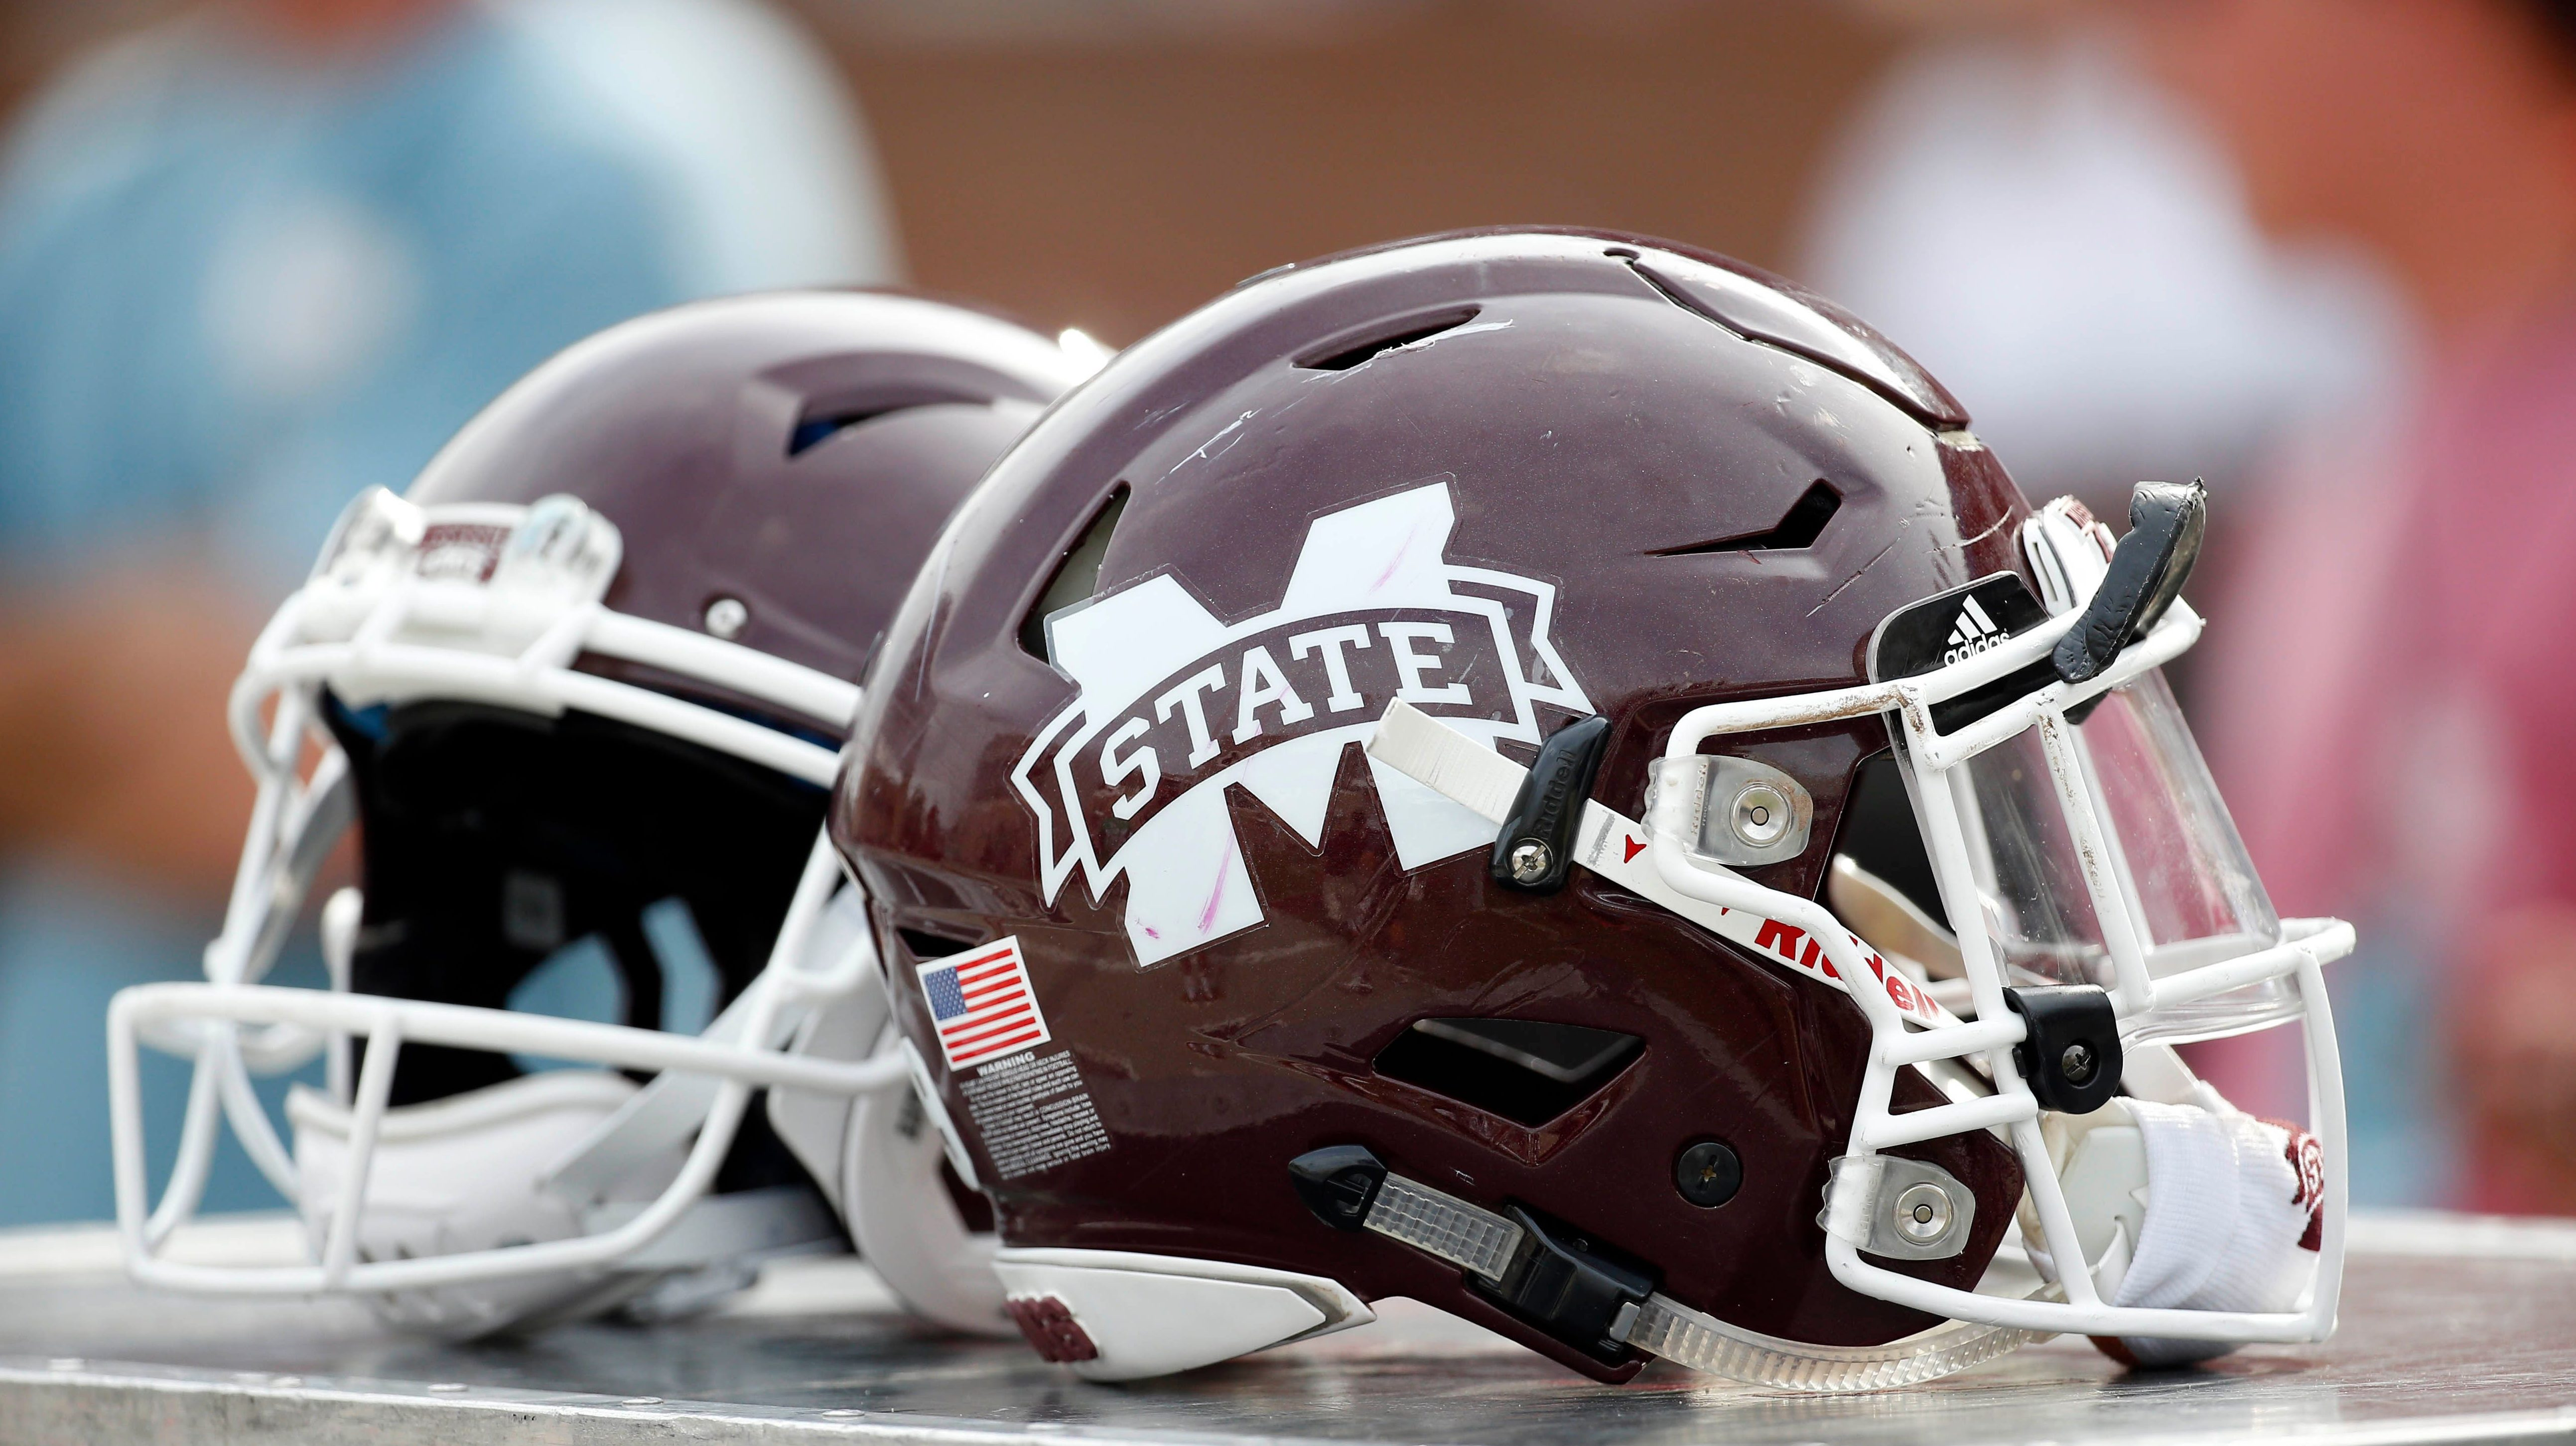 Players' helmets sit on the sideline during the second half of Mississippi State's Maroon and White spring NCAA college football game, Saturday, April 21, 2018, in Starkville, Miss. The Maroon squad won 28-10.